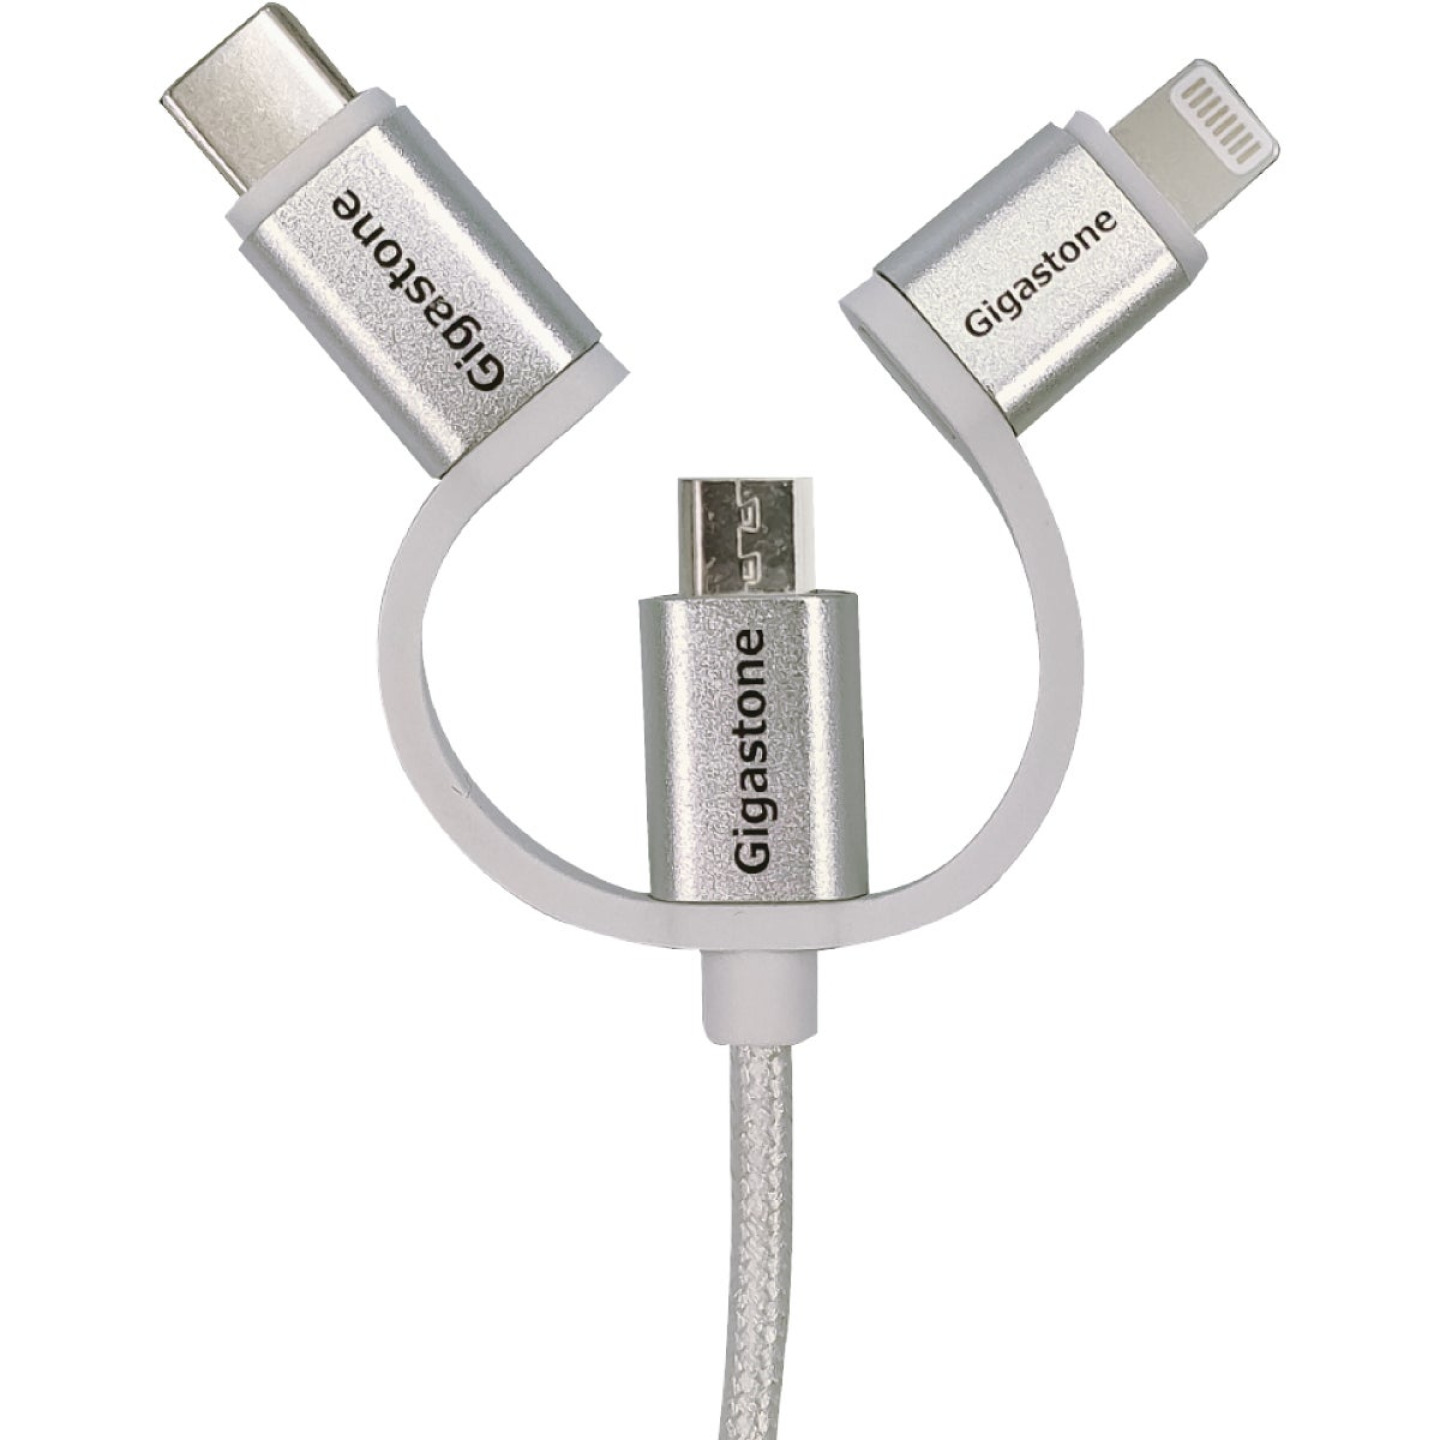 Gigastone 3 Ft. White 3-In-1 USB-A to Micro-USB/Lightning/Type-C Charging & Sync Cable Image 1